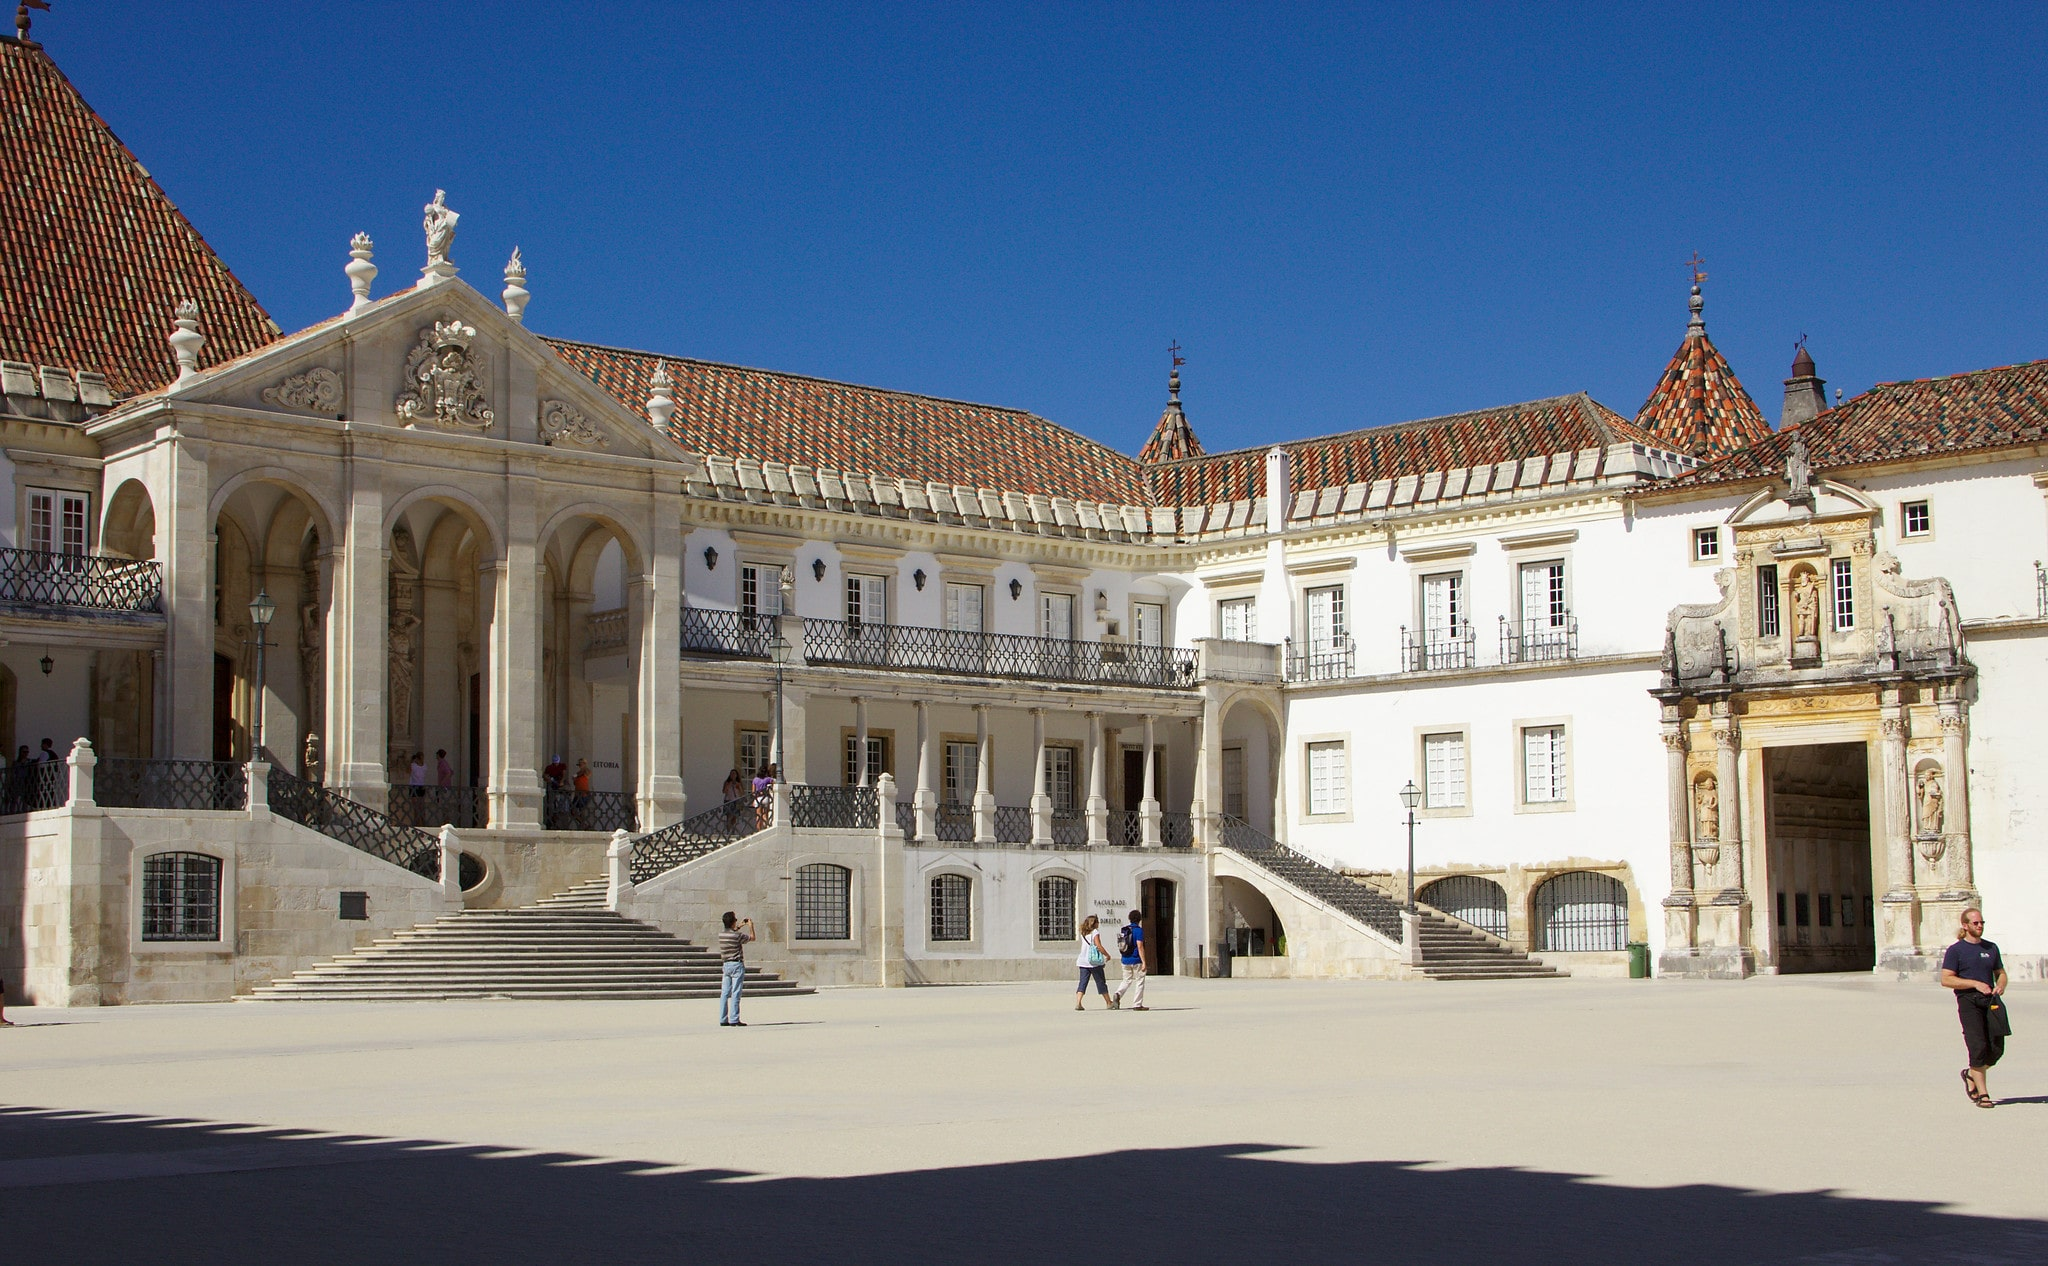 Where to stay in Portugal for awesome student life? Coimbra